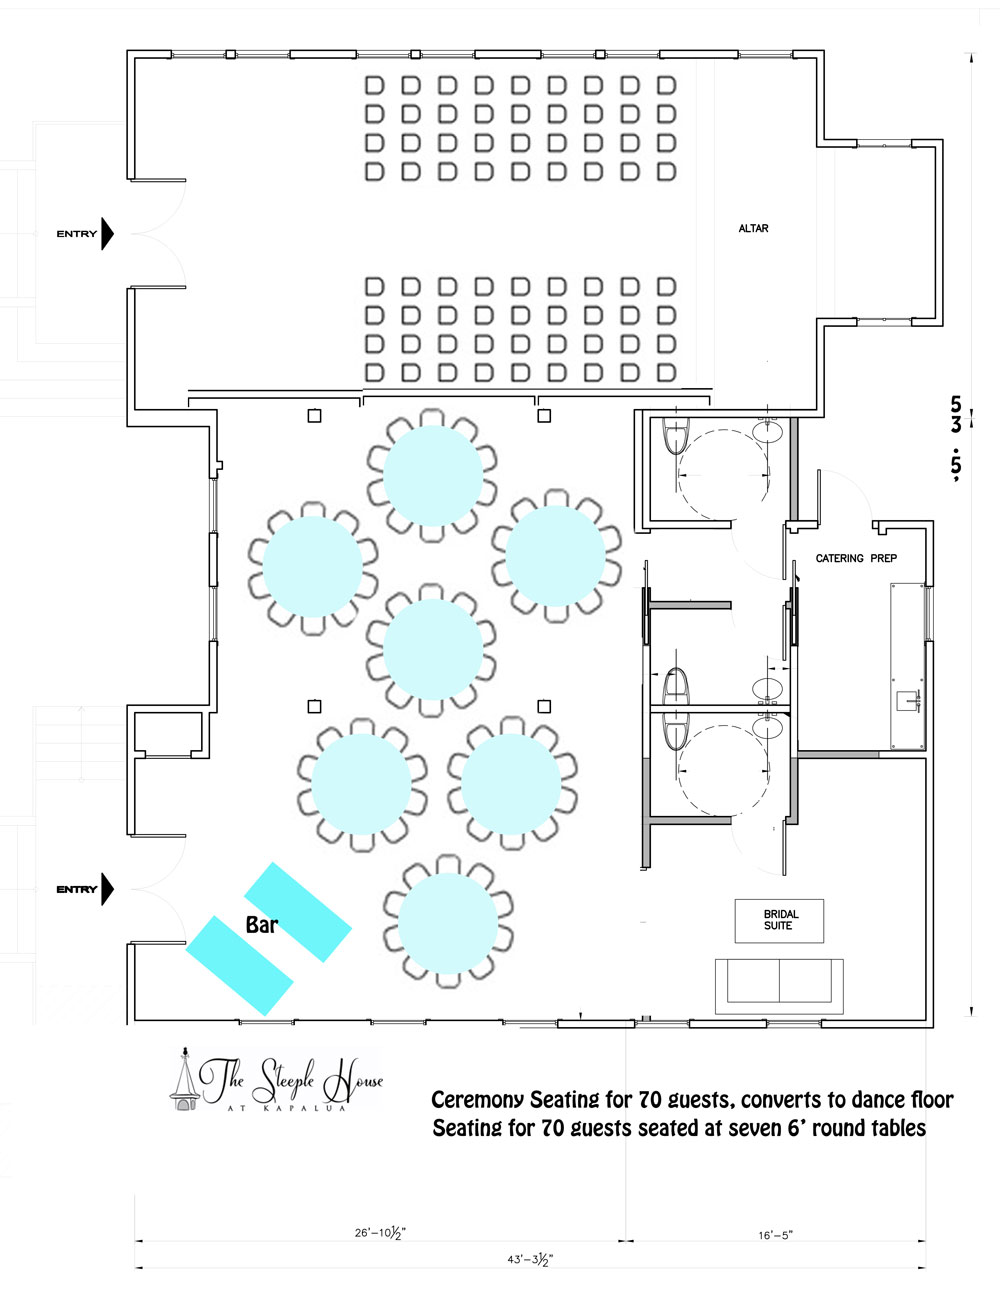 The-Steeple-House-Floor-Plan-70-ppl-rounds-with-ceremony.jpg